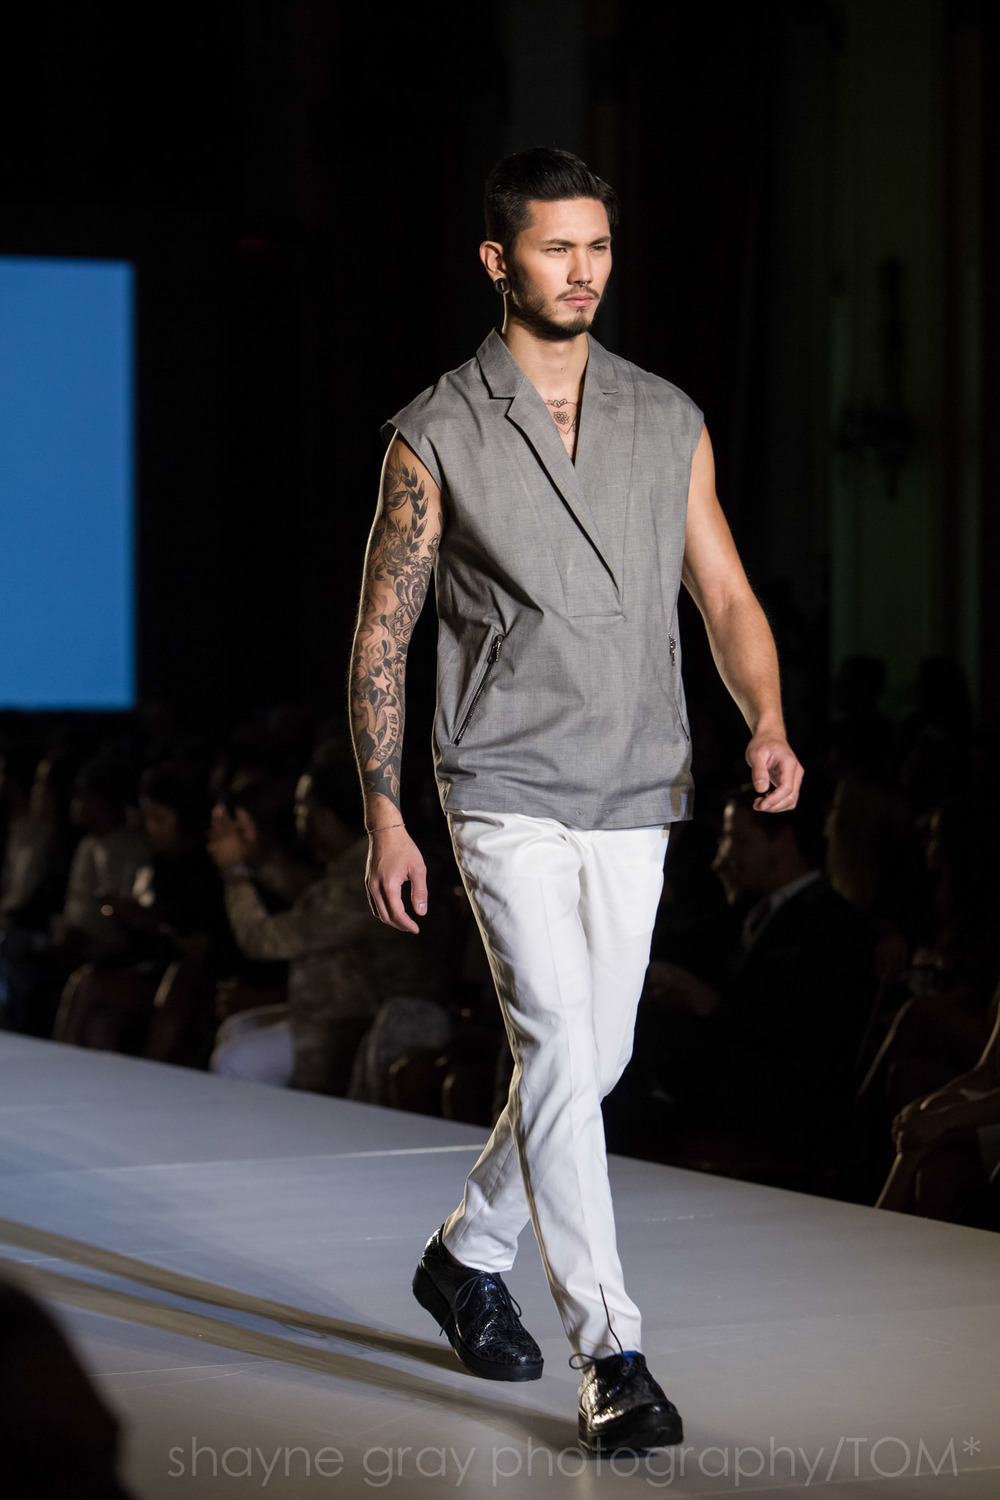 Shayne-Gray-Toronto-men's-fashion_week-TOM-noel-crisostomo-8449.jpg